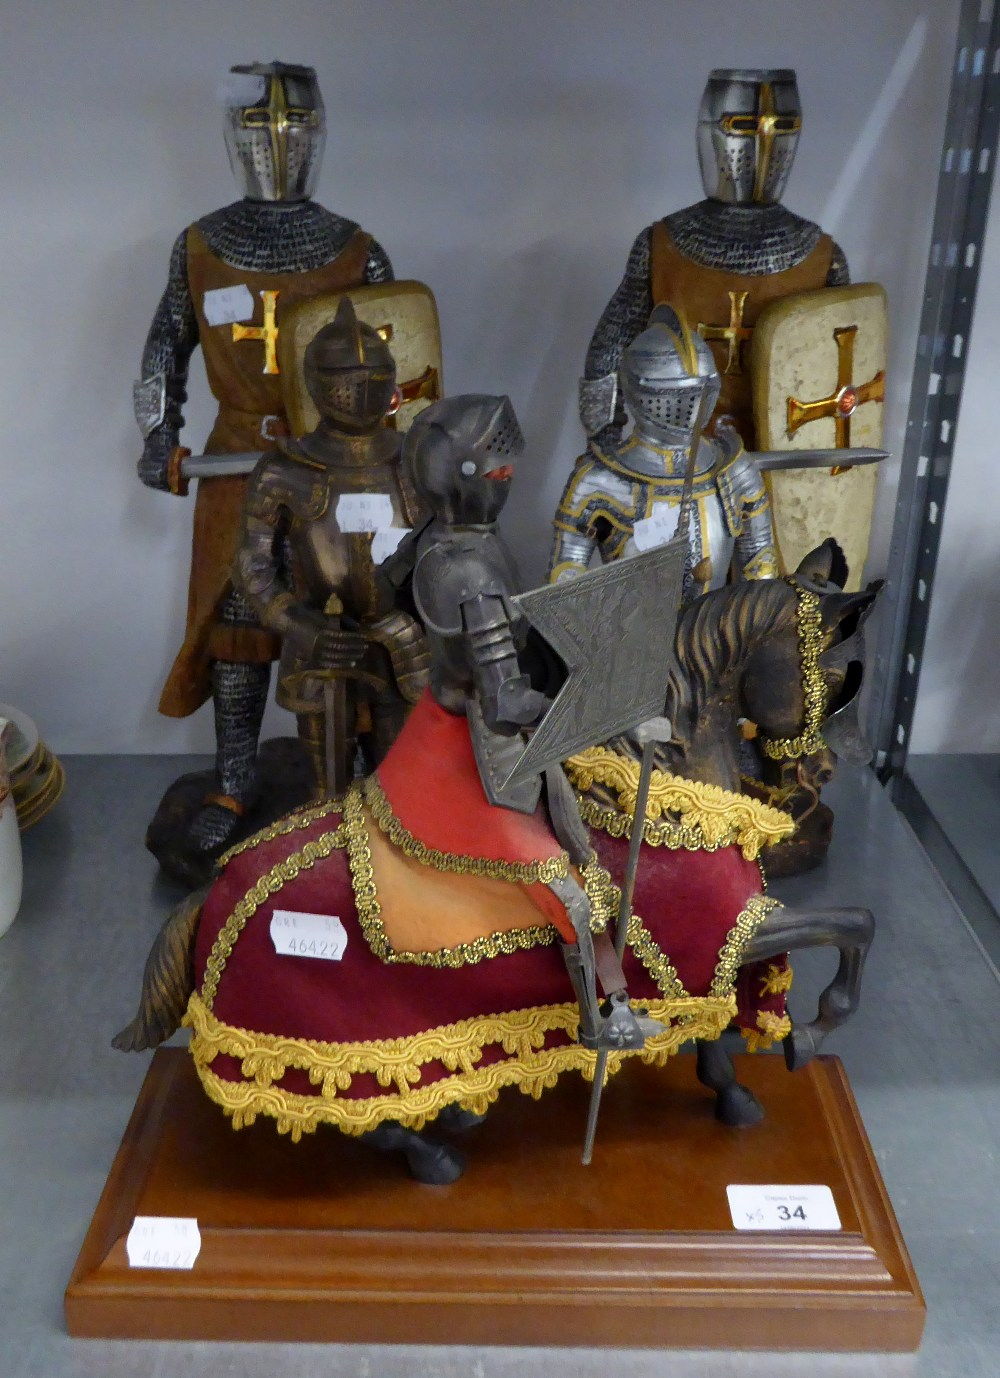 TWO COMPOSITION FIGURES OF CRUSADERS WITH SWORDS AND SHIELDS, 16 ½? HIGH; A RESIN MODEL OF AN